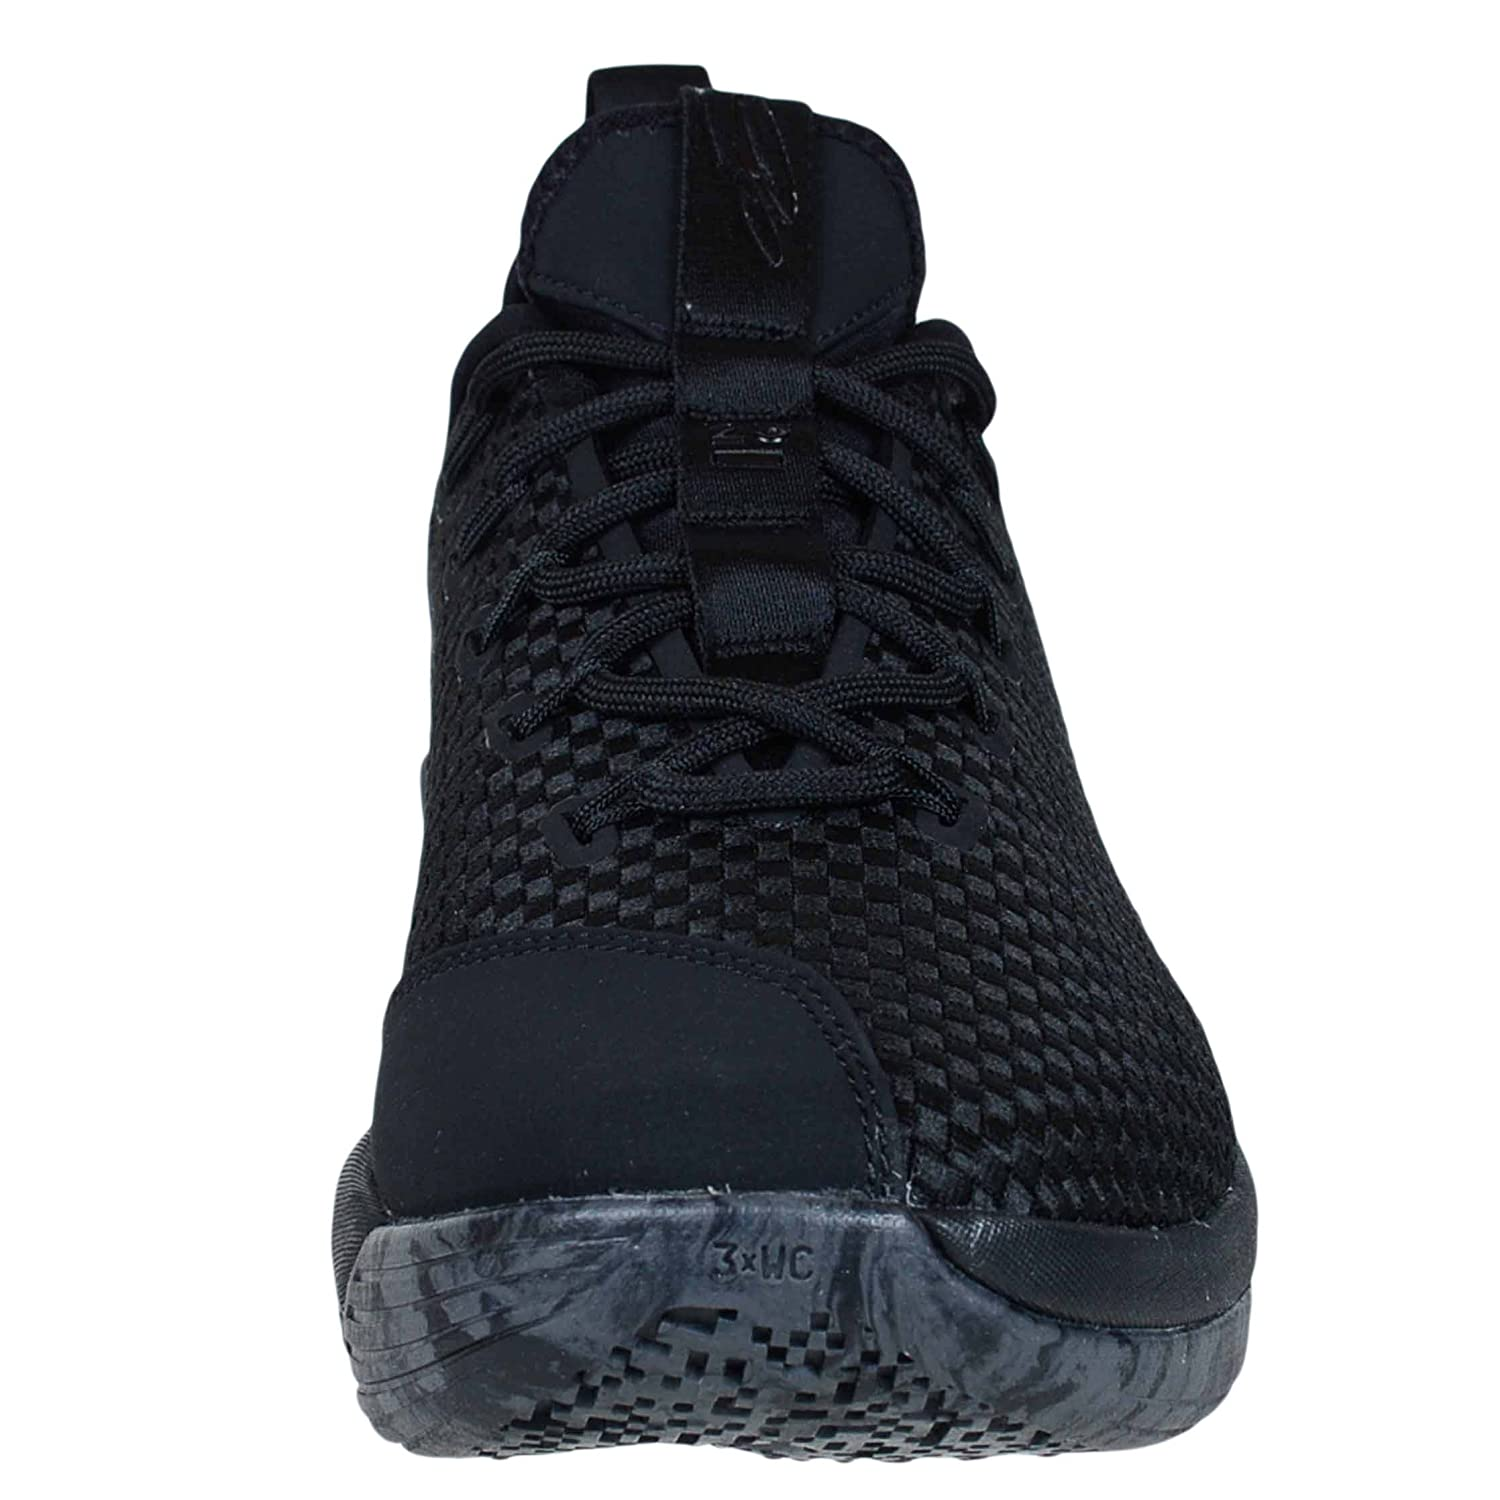 huge selection of cca5b 86e74 Nike Lebron Xiv14 Low Black Dark Grey Woven James Basketball Shoes - 11.5 D  (M) US  Buy Online at Low Prices in India - Amazon.in